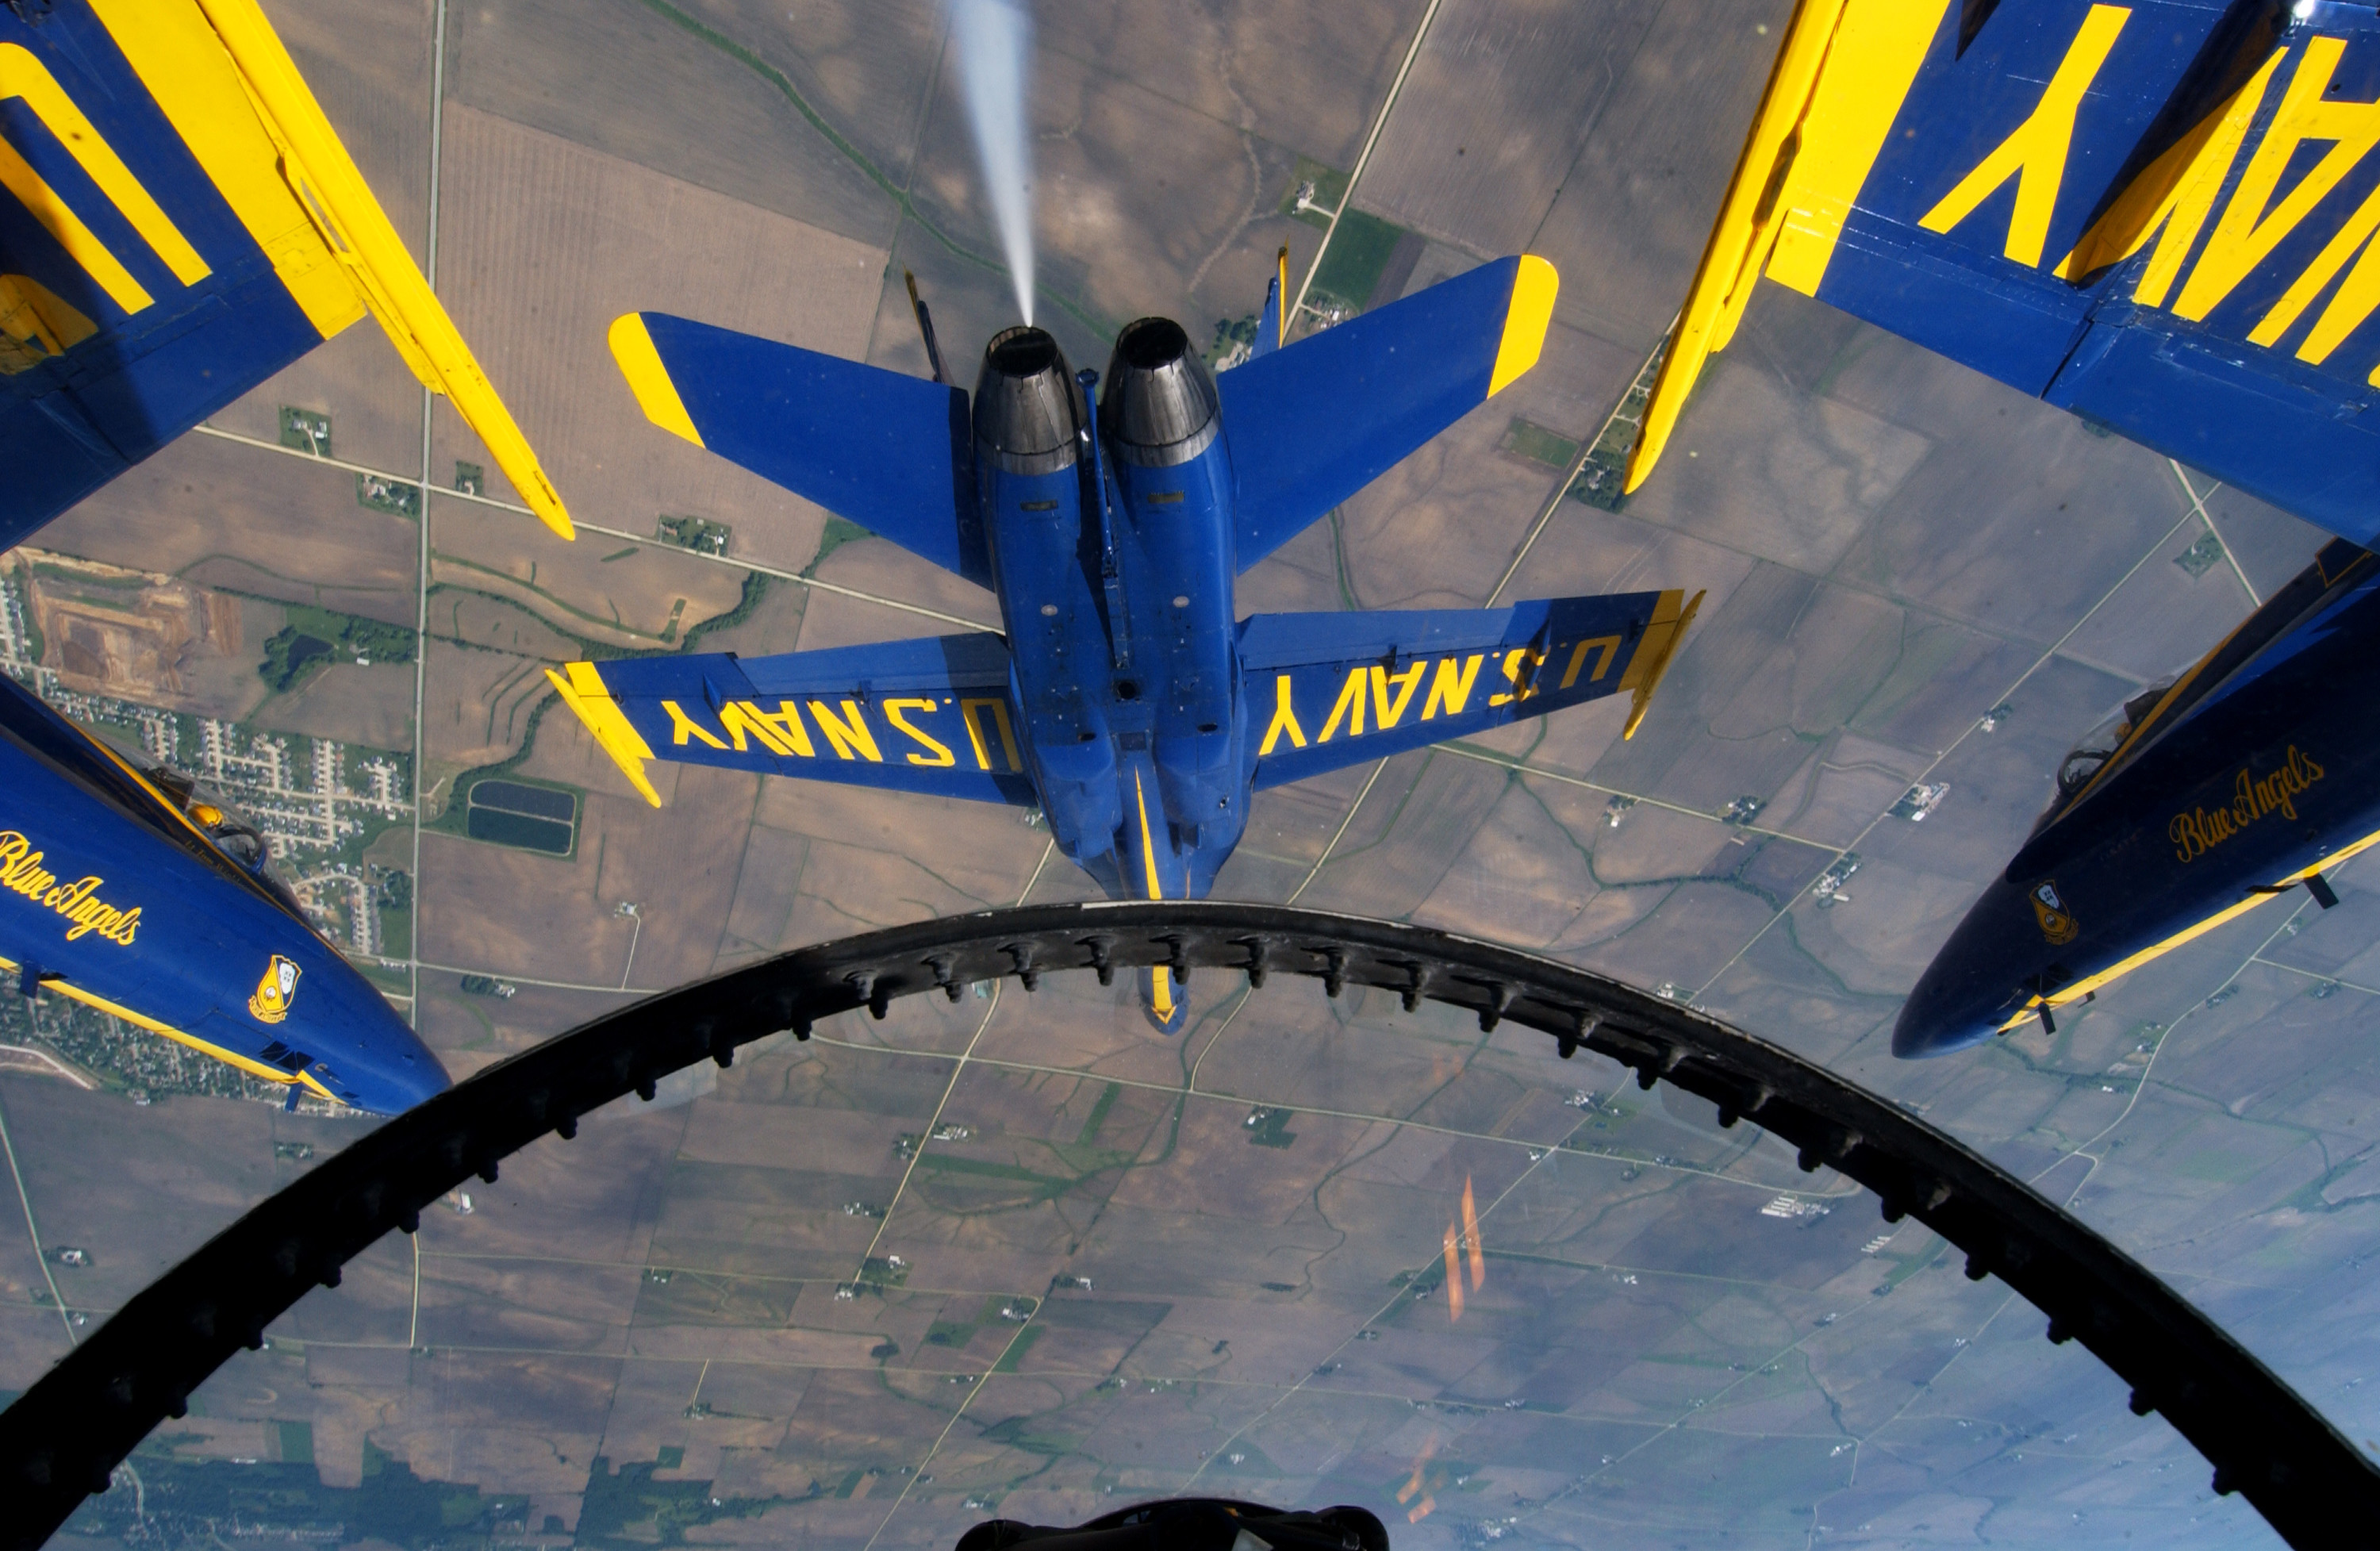 3000x1955 Planes F-18 Hornet Blue Angels Navy Military War Cockpits Aircraft ...